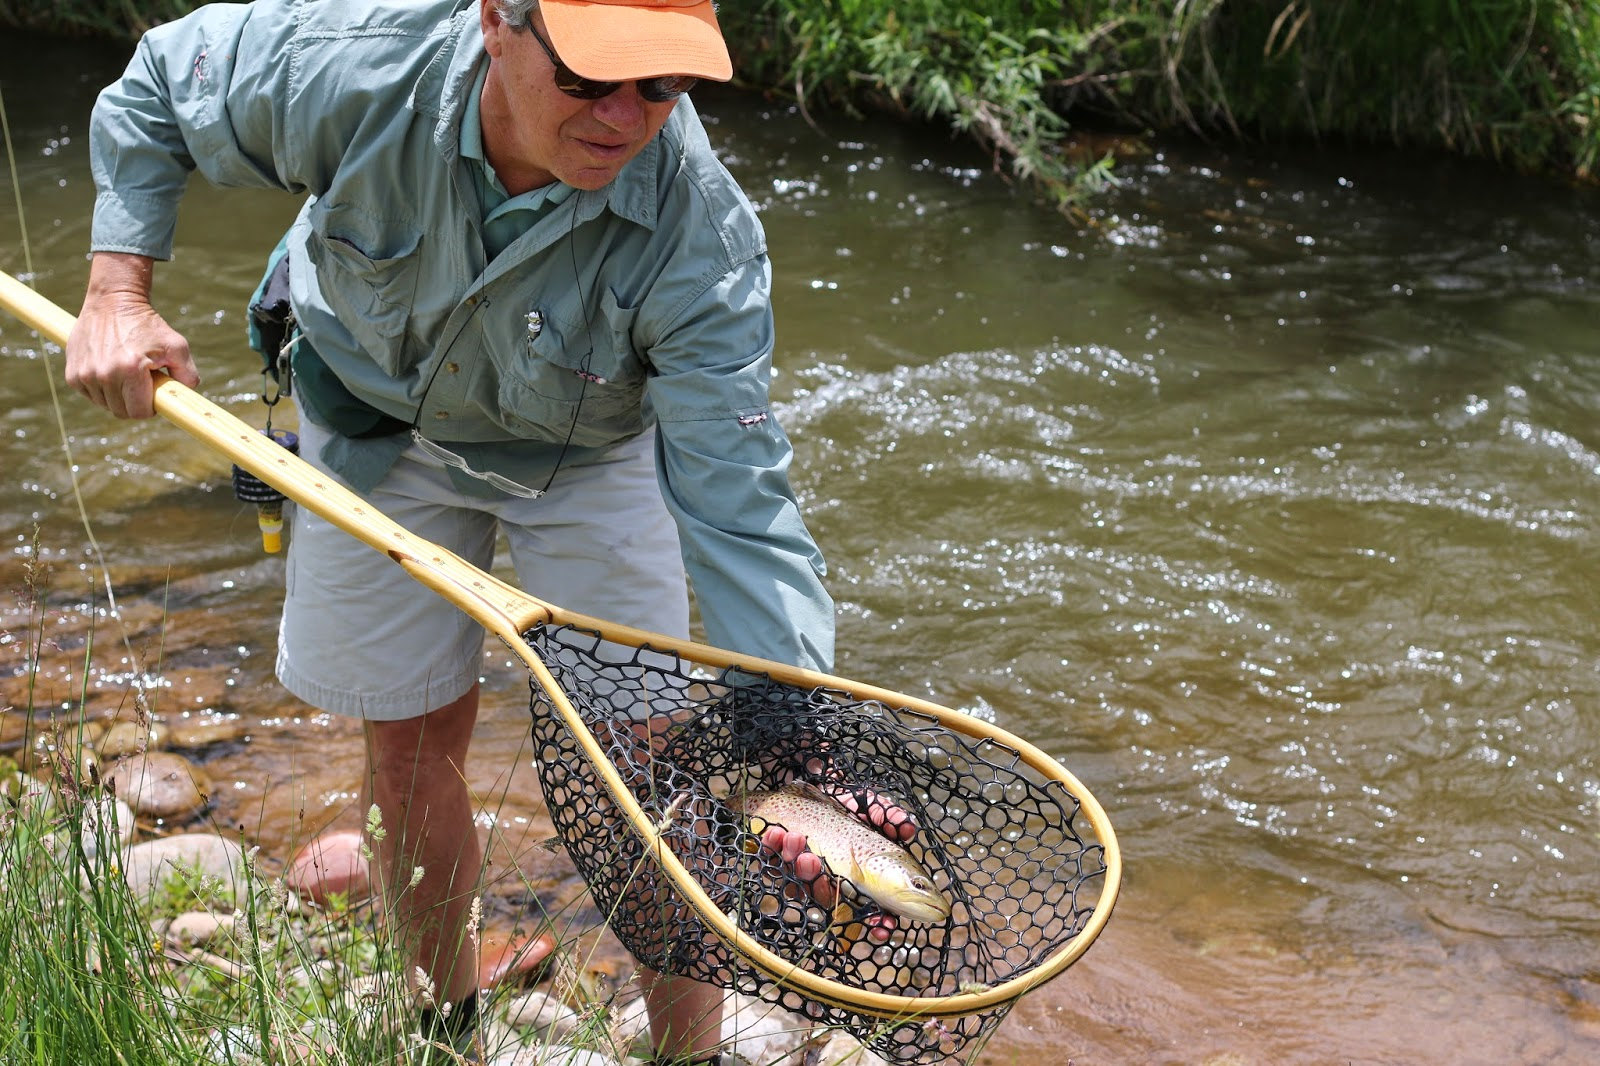 Fly+Fish+for+brown+trout+in+Colorado+with+Jay+Scott+Outdoors+9.JPG